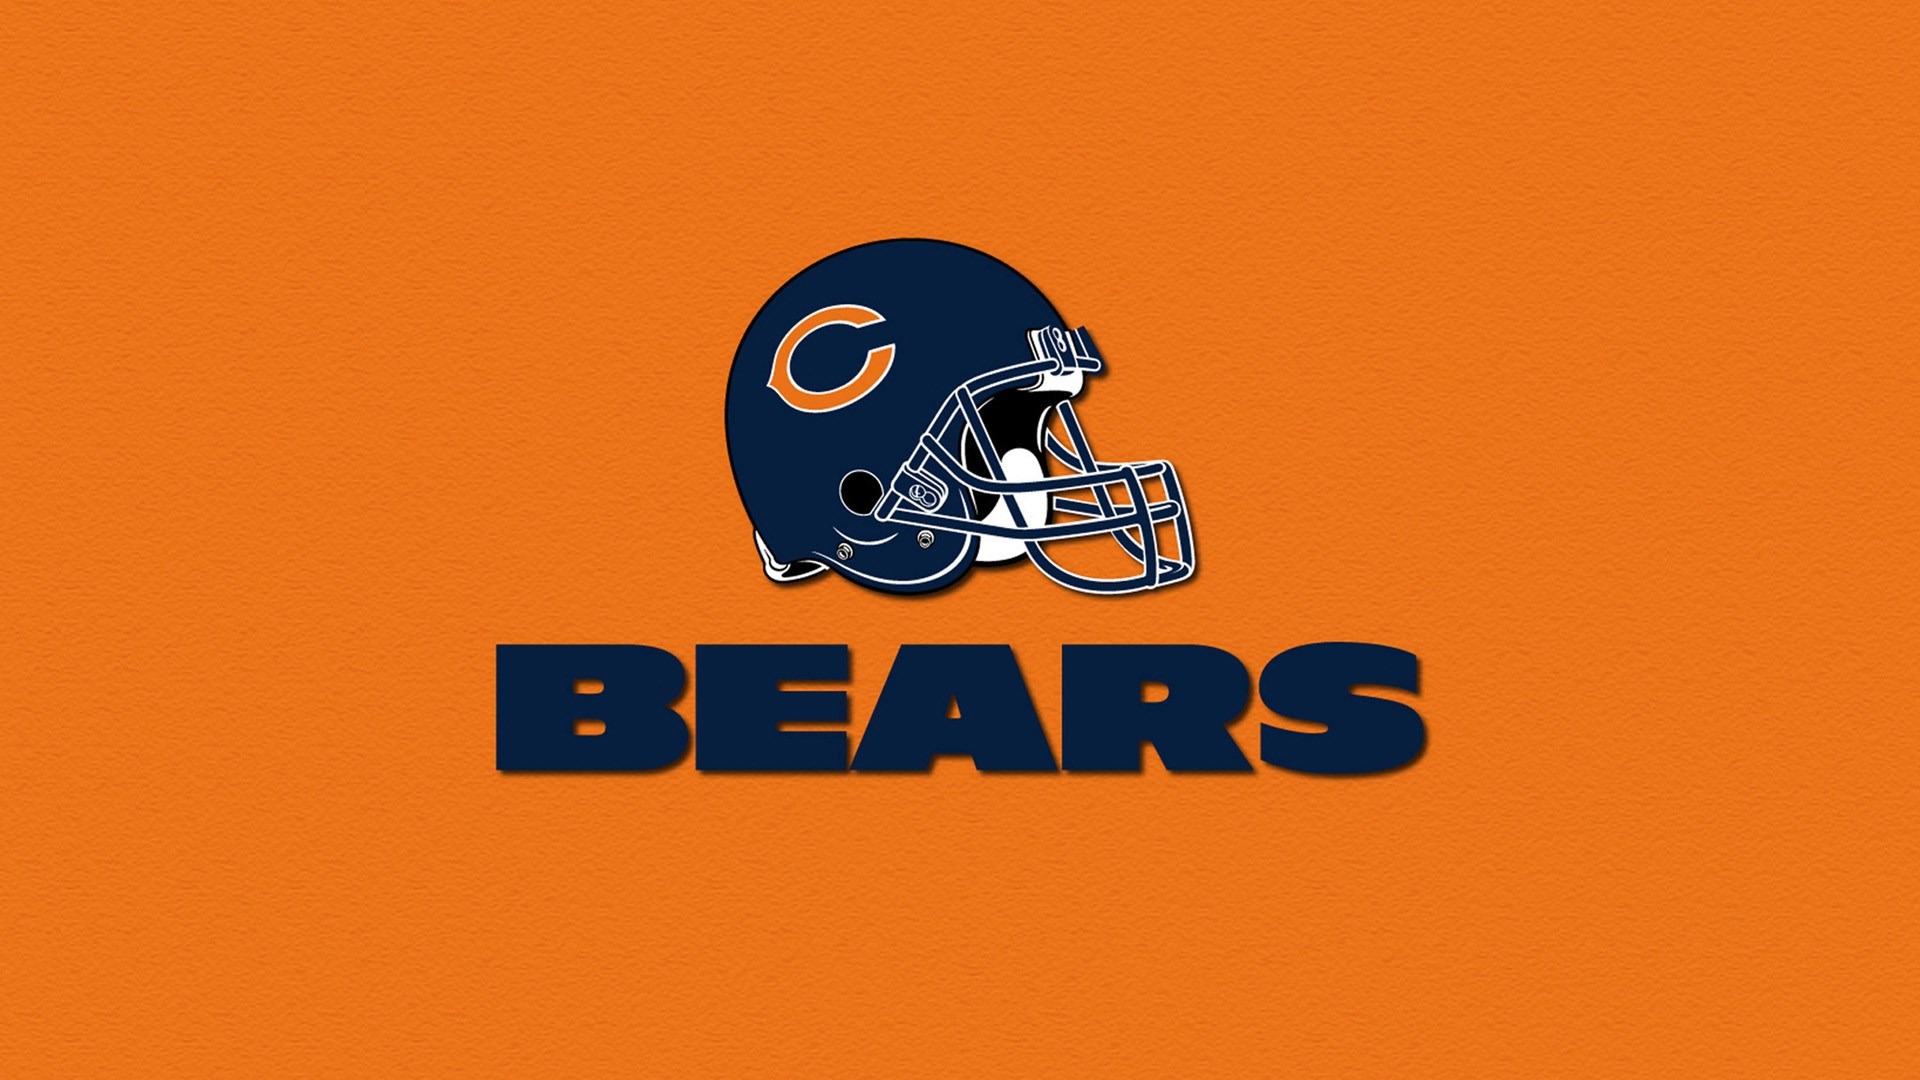 1920x1080px-chicago-bears-backgrounds-hd-by-Thorn-Peacock-wallpaper-wp3401010